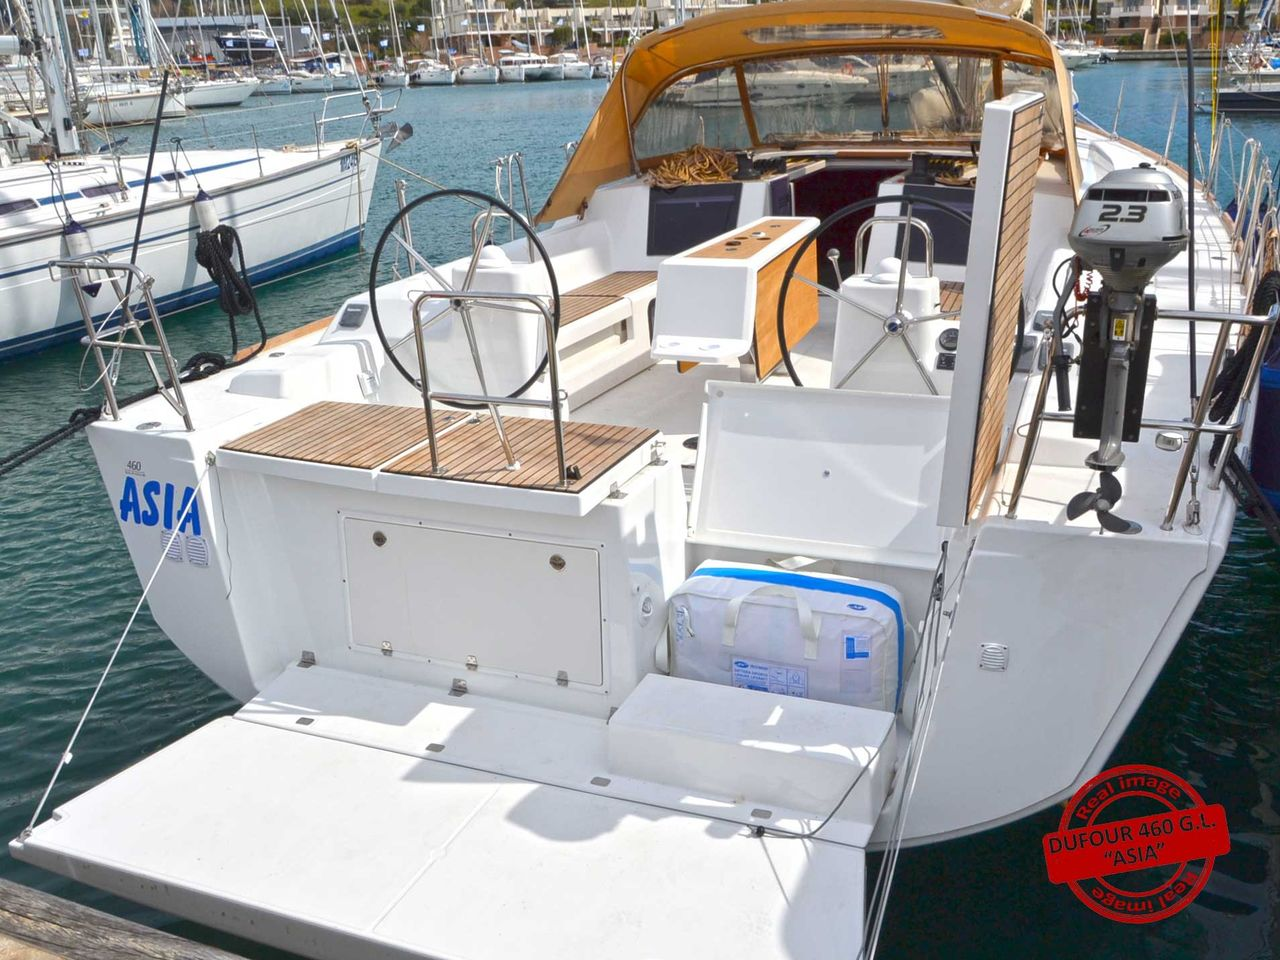 Dufour 460 GL - picture 1